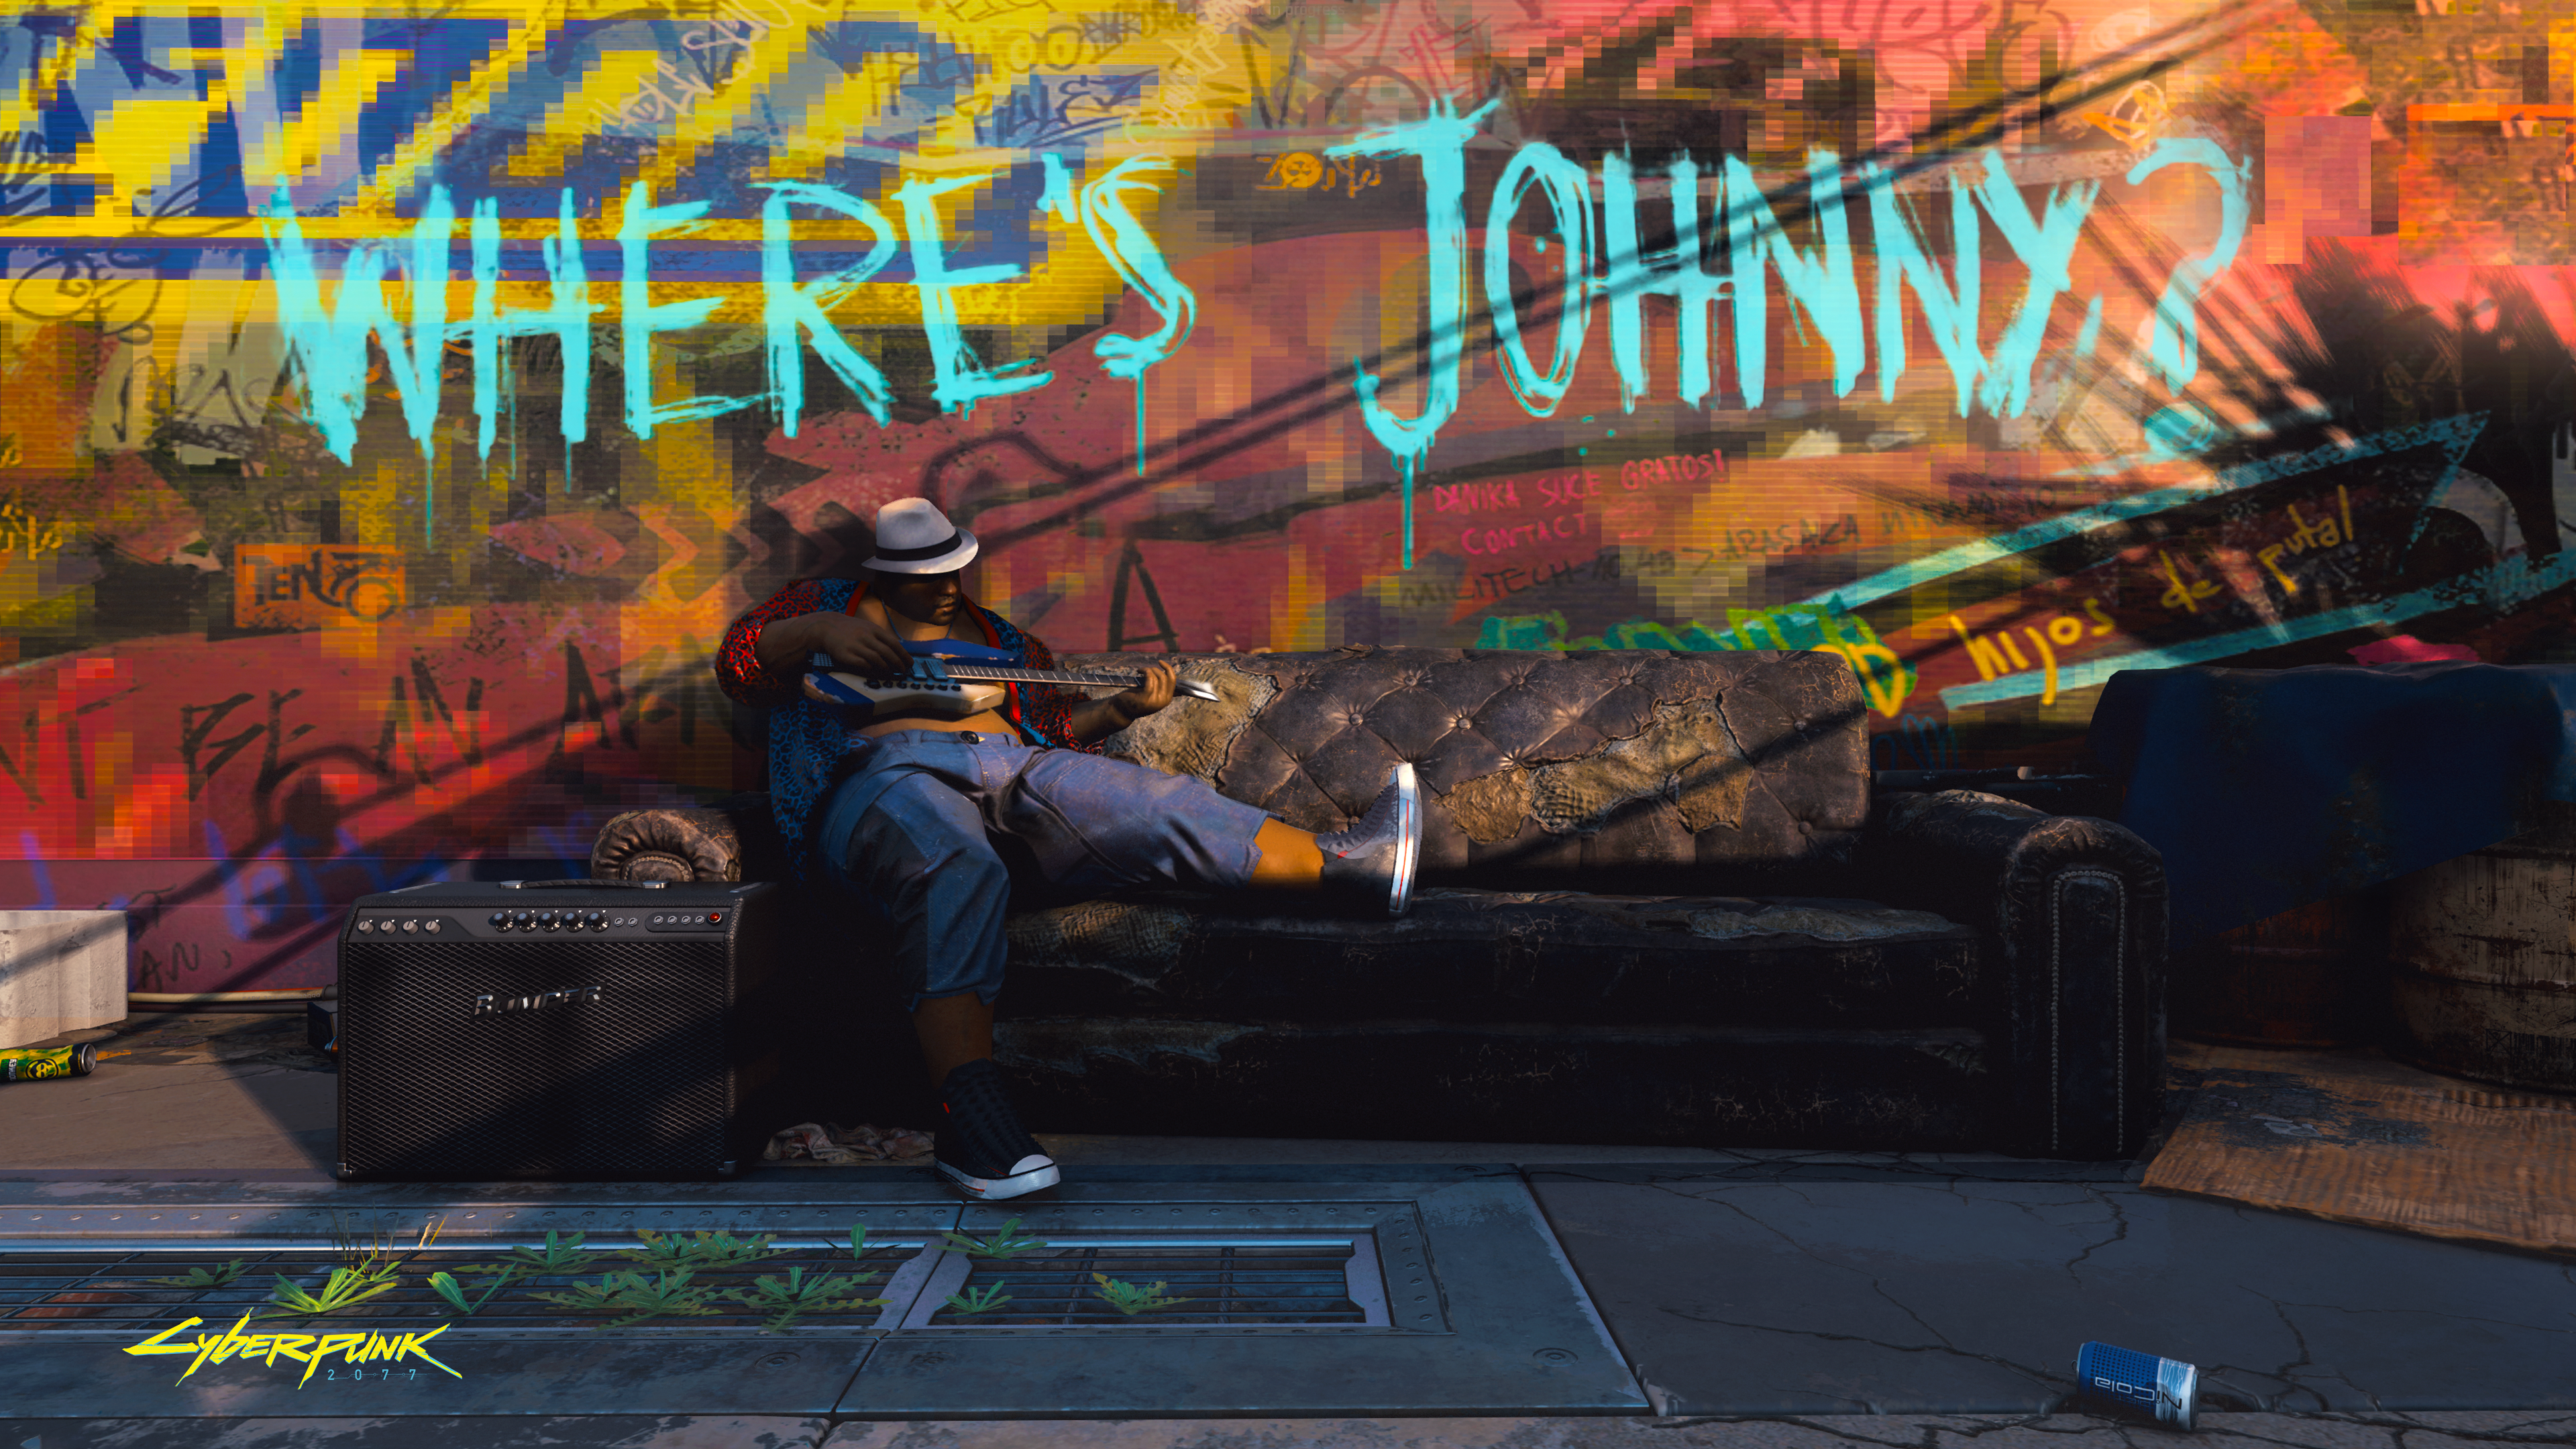 Graffiti scrawled around the city asks what happened to Johnny Silverhand